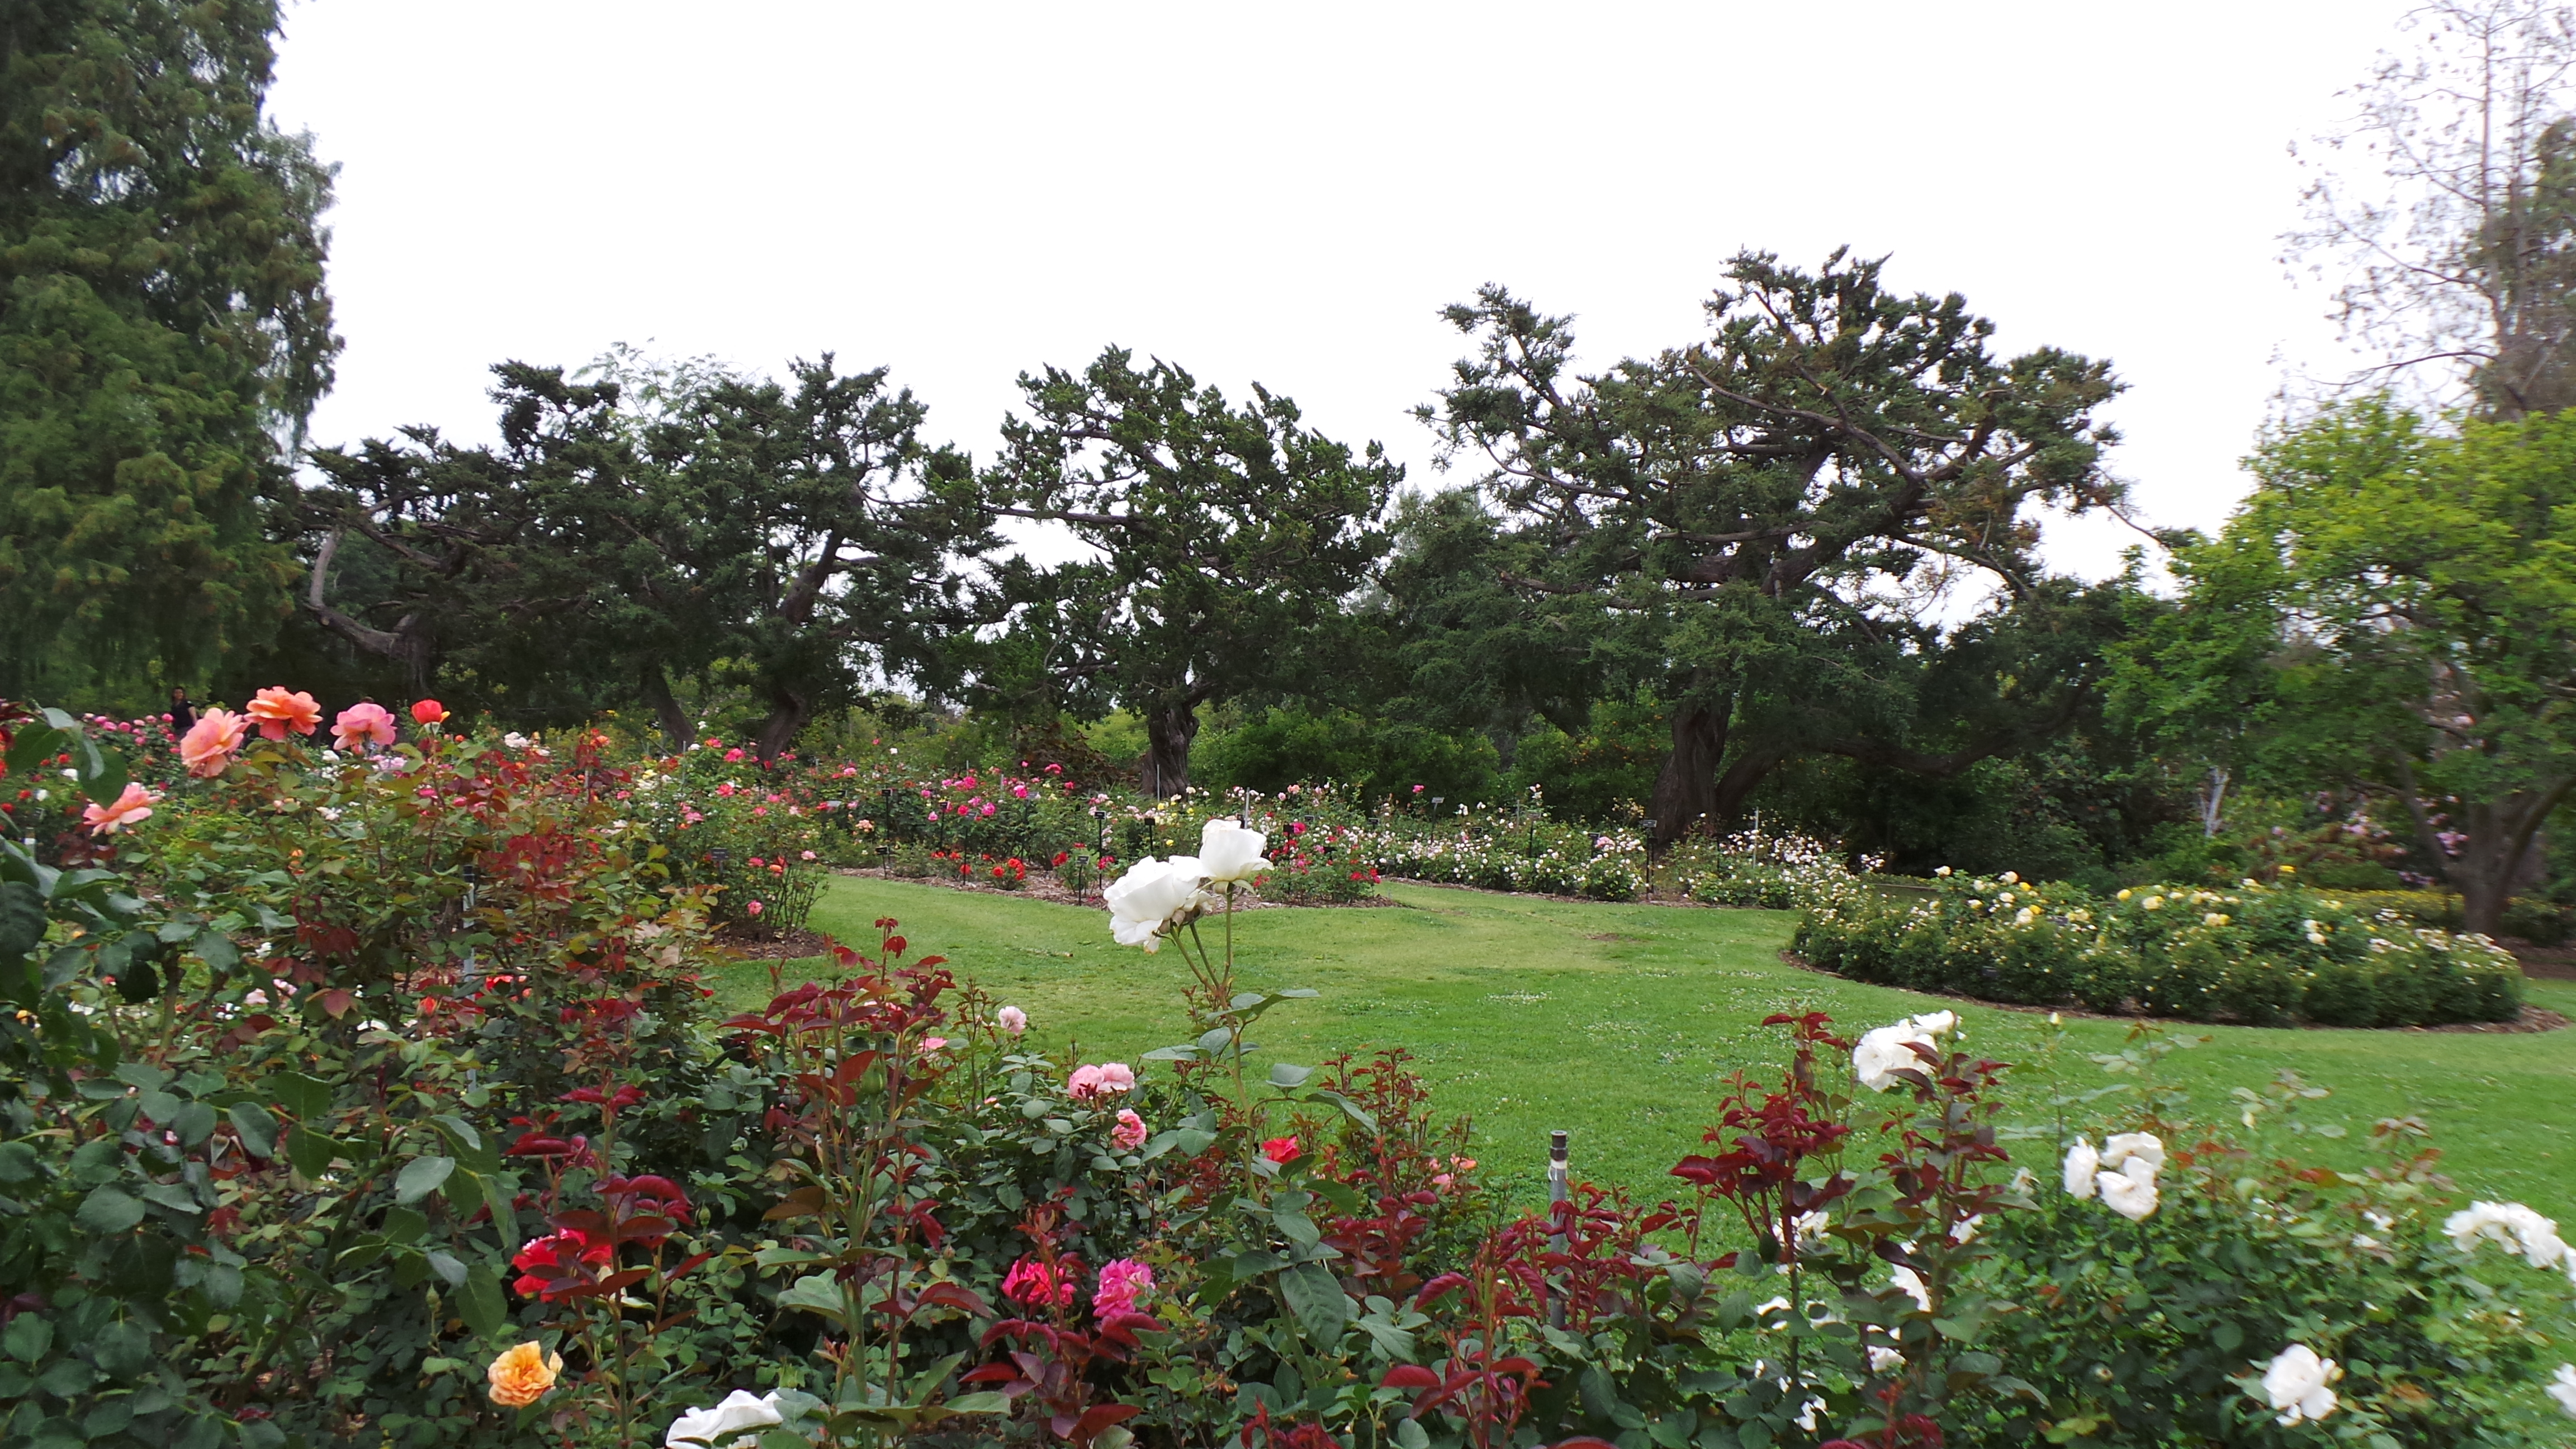 Roses In Garden: The Huntington Library, Art Collections And Botanical